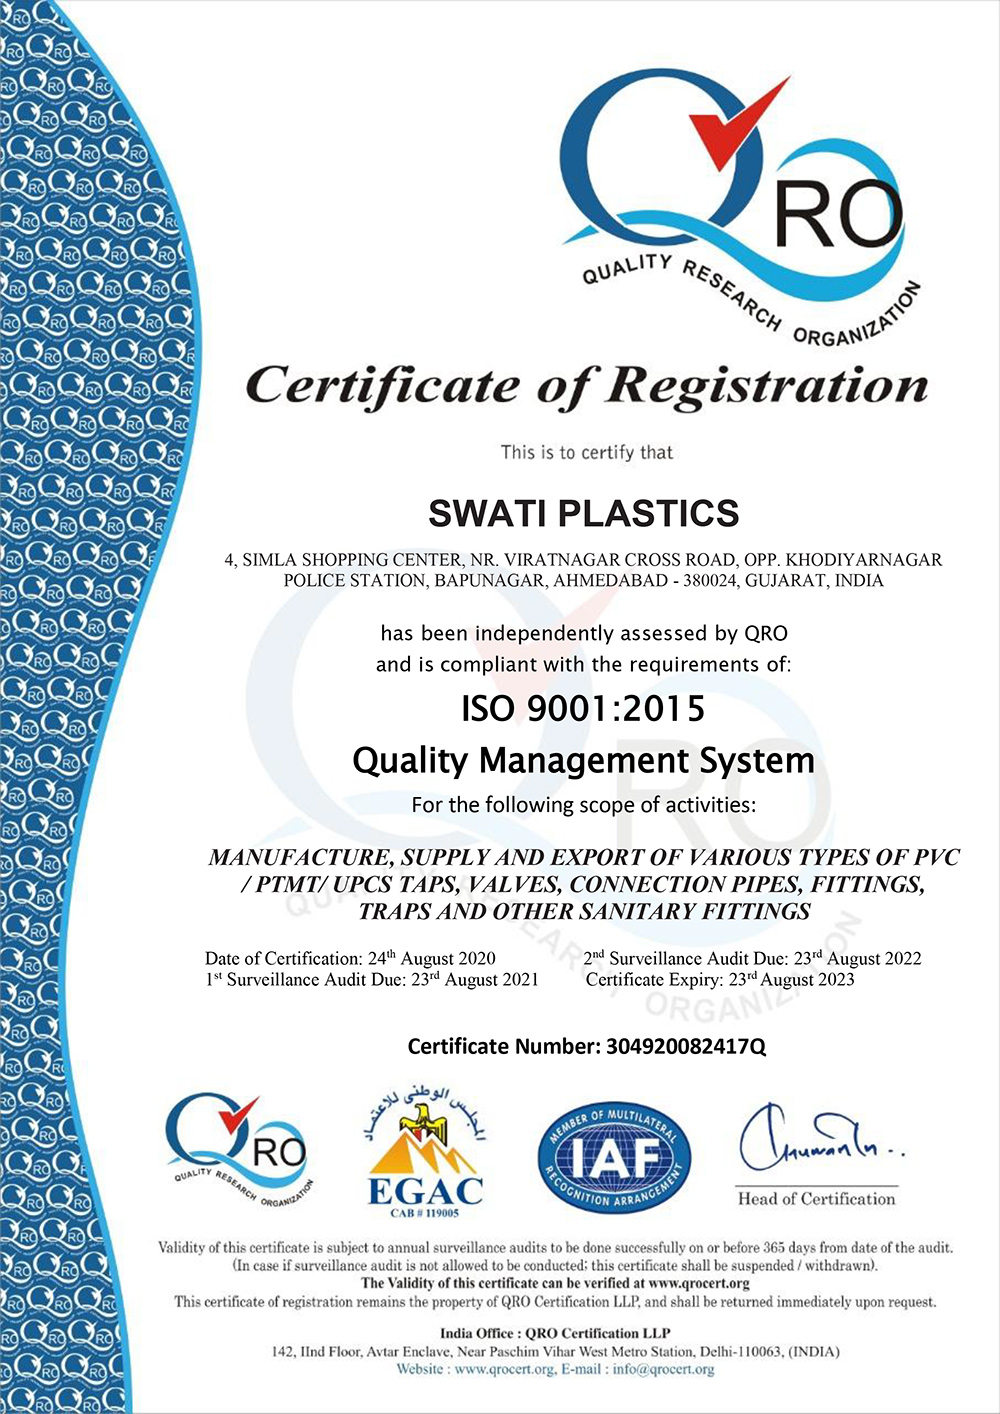 WELCOME TO SWATI PLASTIC AN ISO 9001:2015 CERTIFIED COMPANY